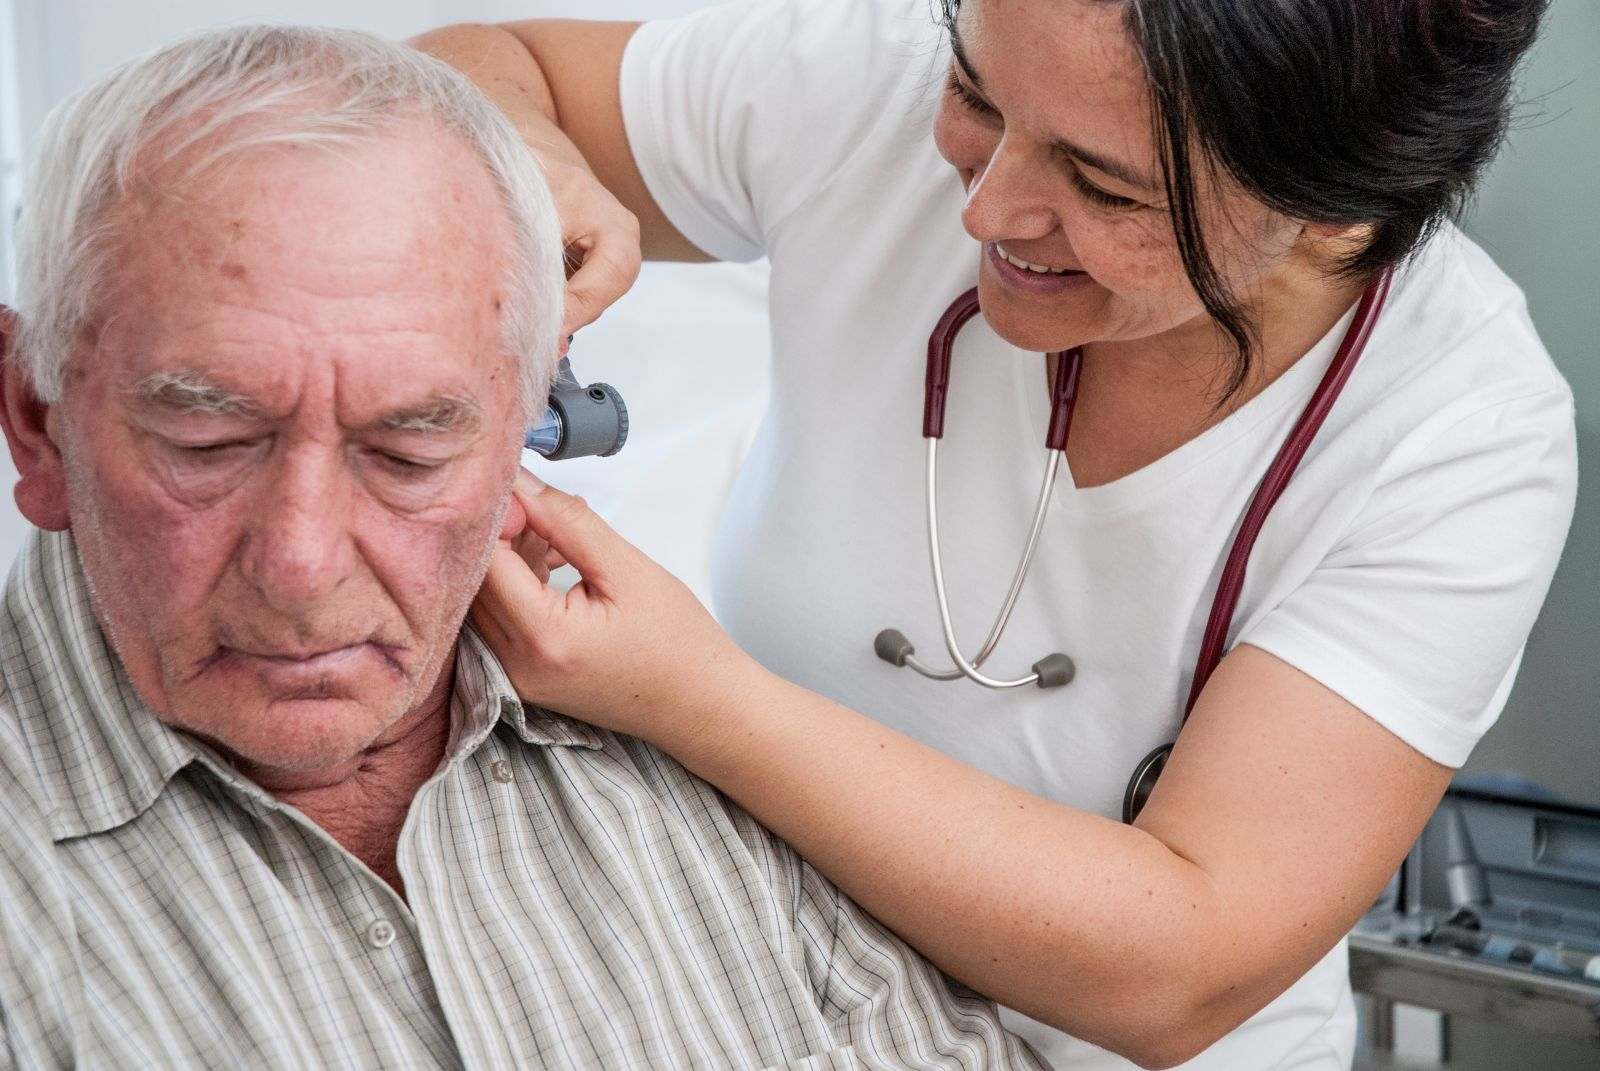 Ask the doctor: Is it worrisome to hear a pulse in my ear